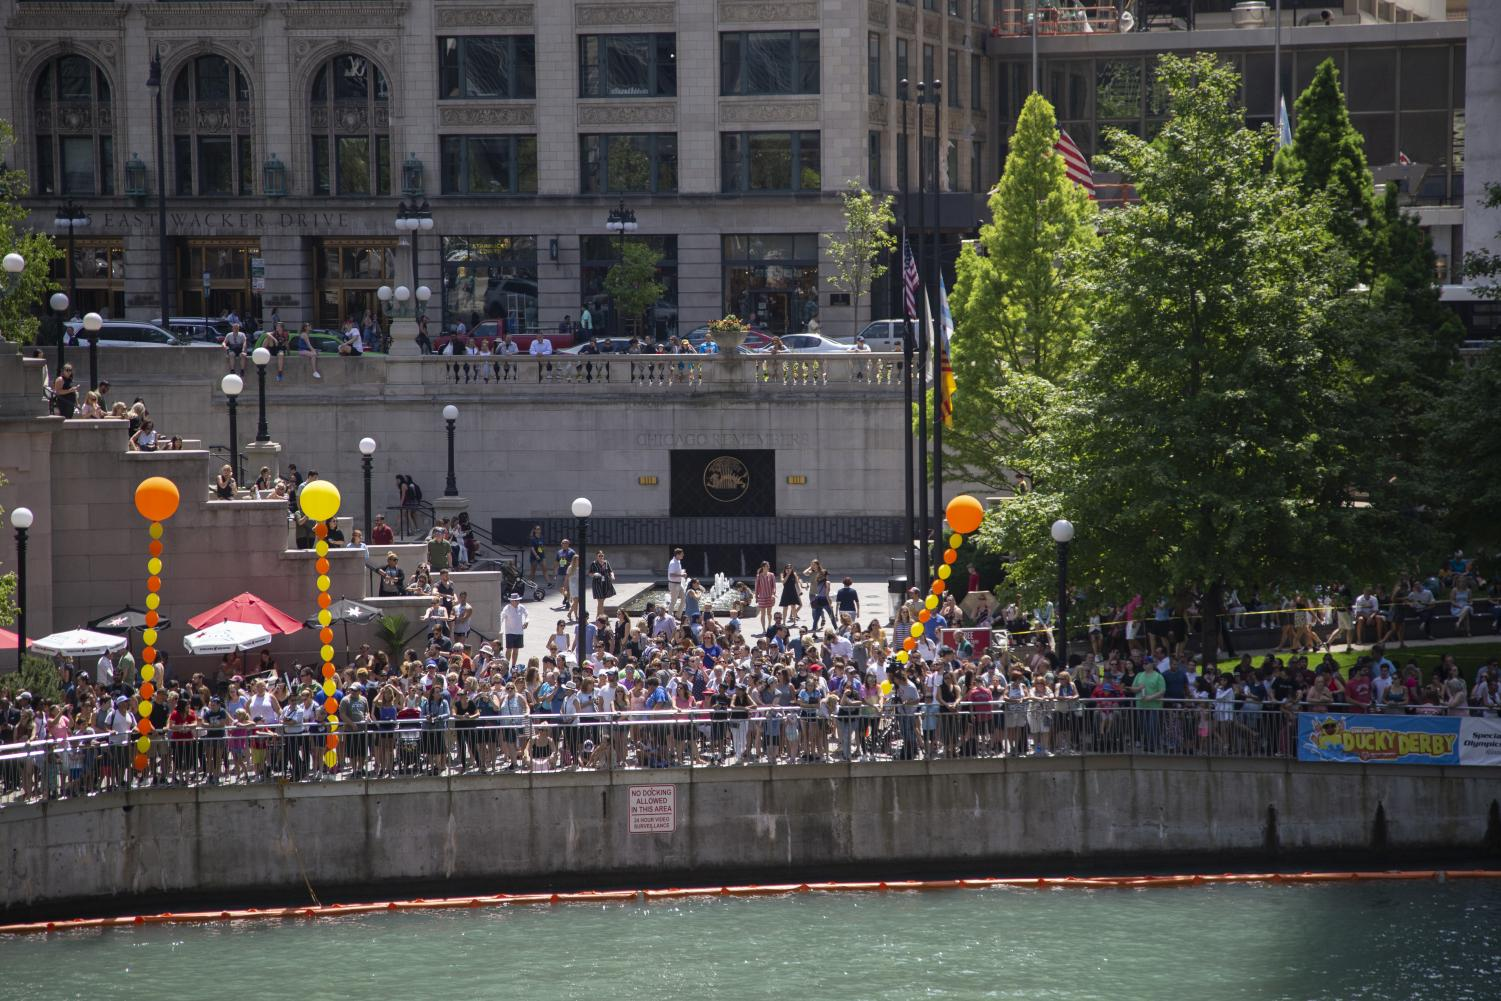 Ducky-owners+and+spectators+cheered+from+the+Riverwalk+as+the+duckies+were+dumped+into+the+river.